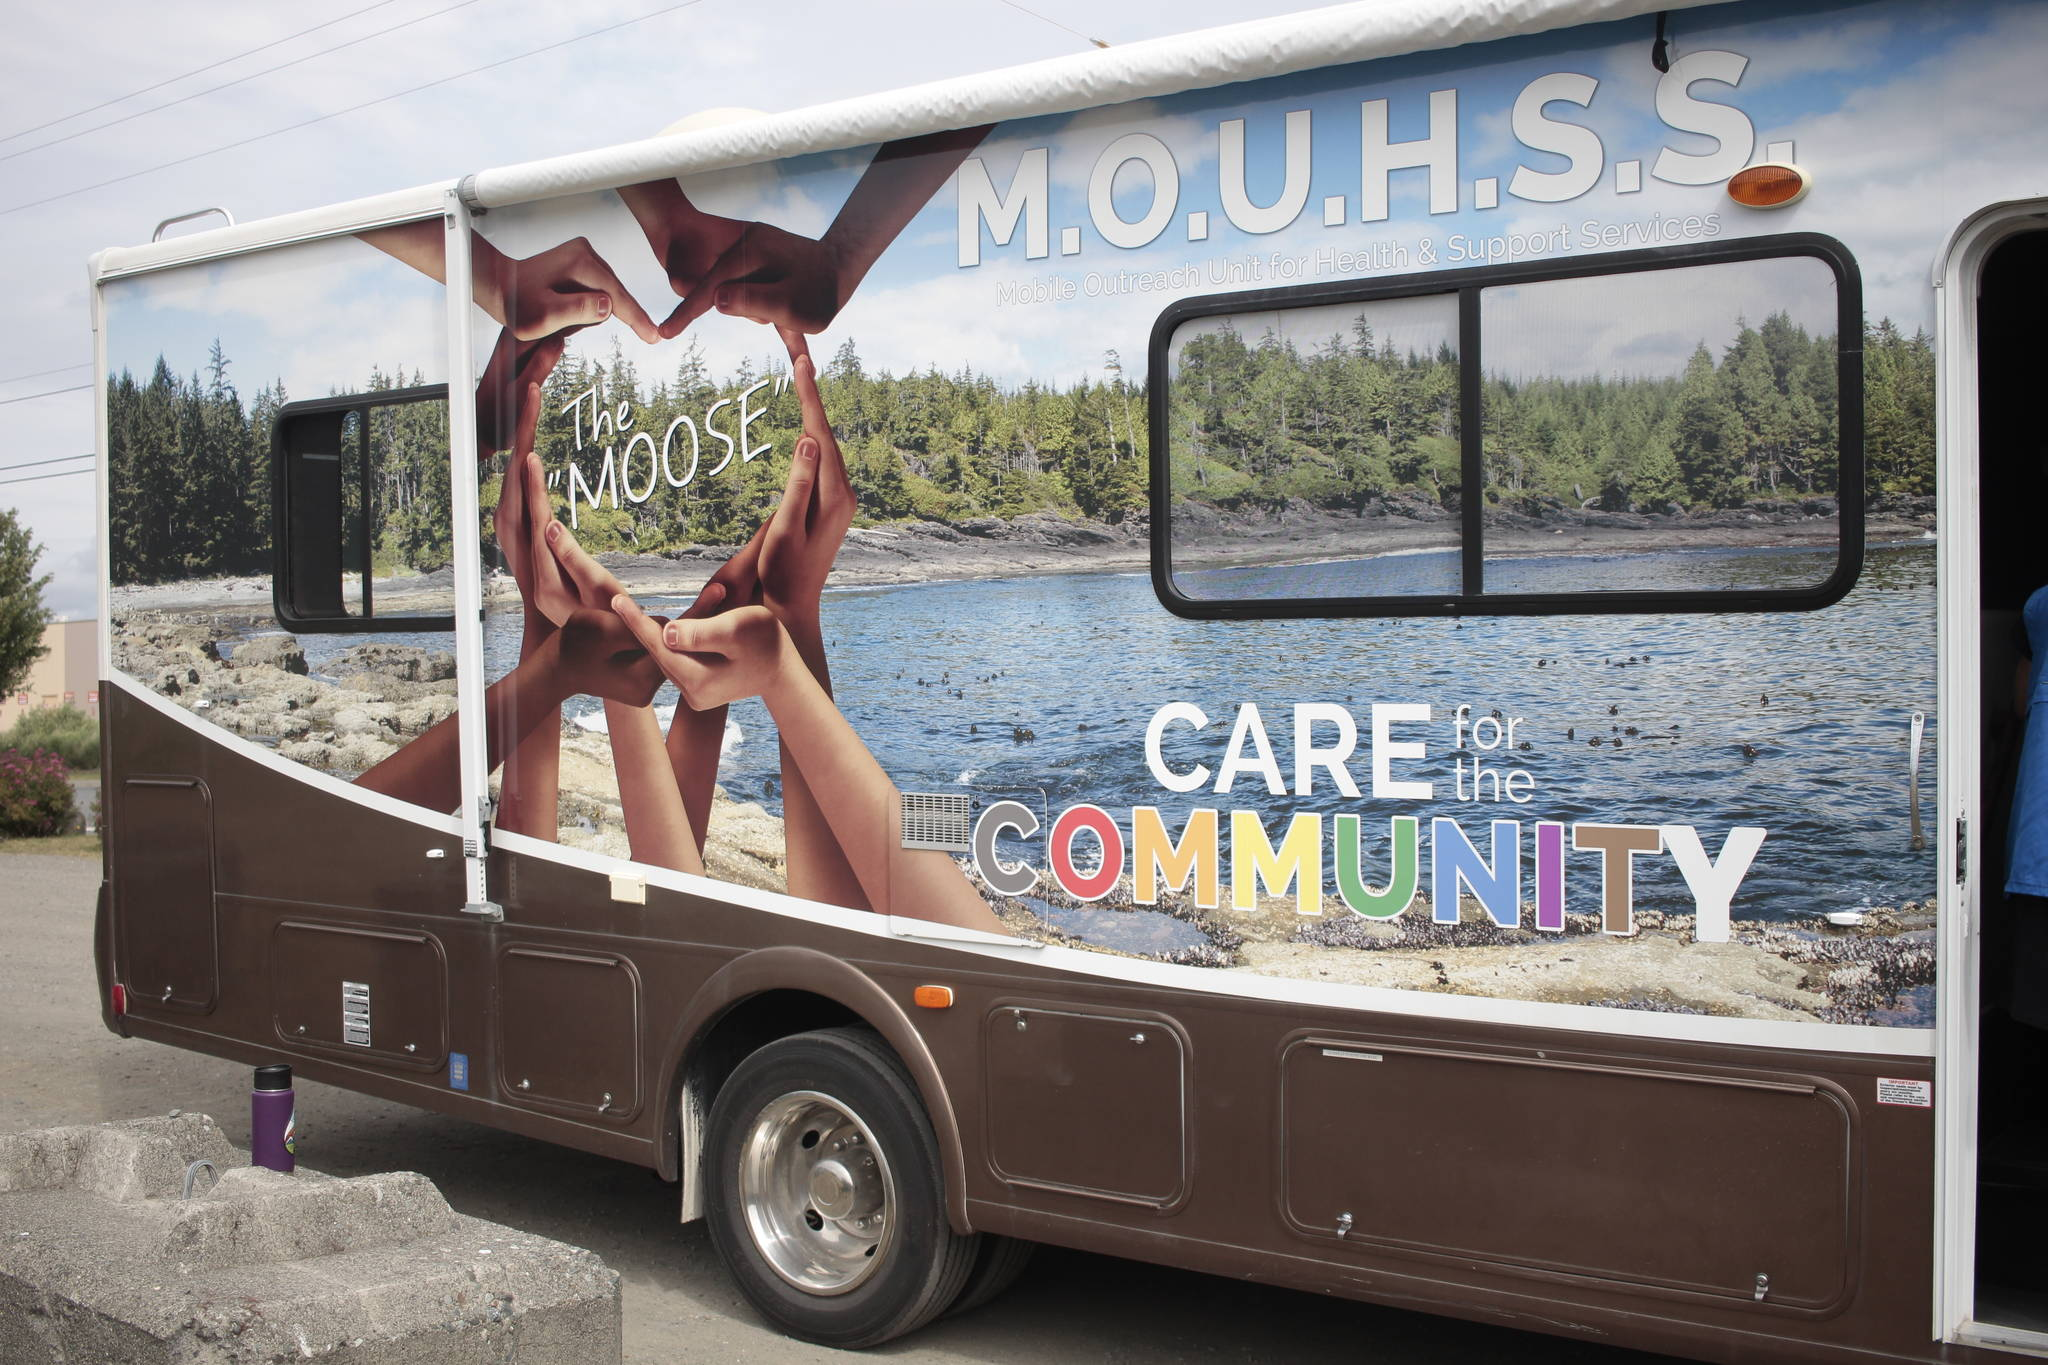 MOUHSS stands for Mobile Outreach Unit for Health and Support Services, and takes a holistic approach to health. Photo by Marc Kitteringham, Campbell River Mirror